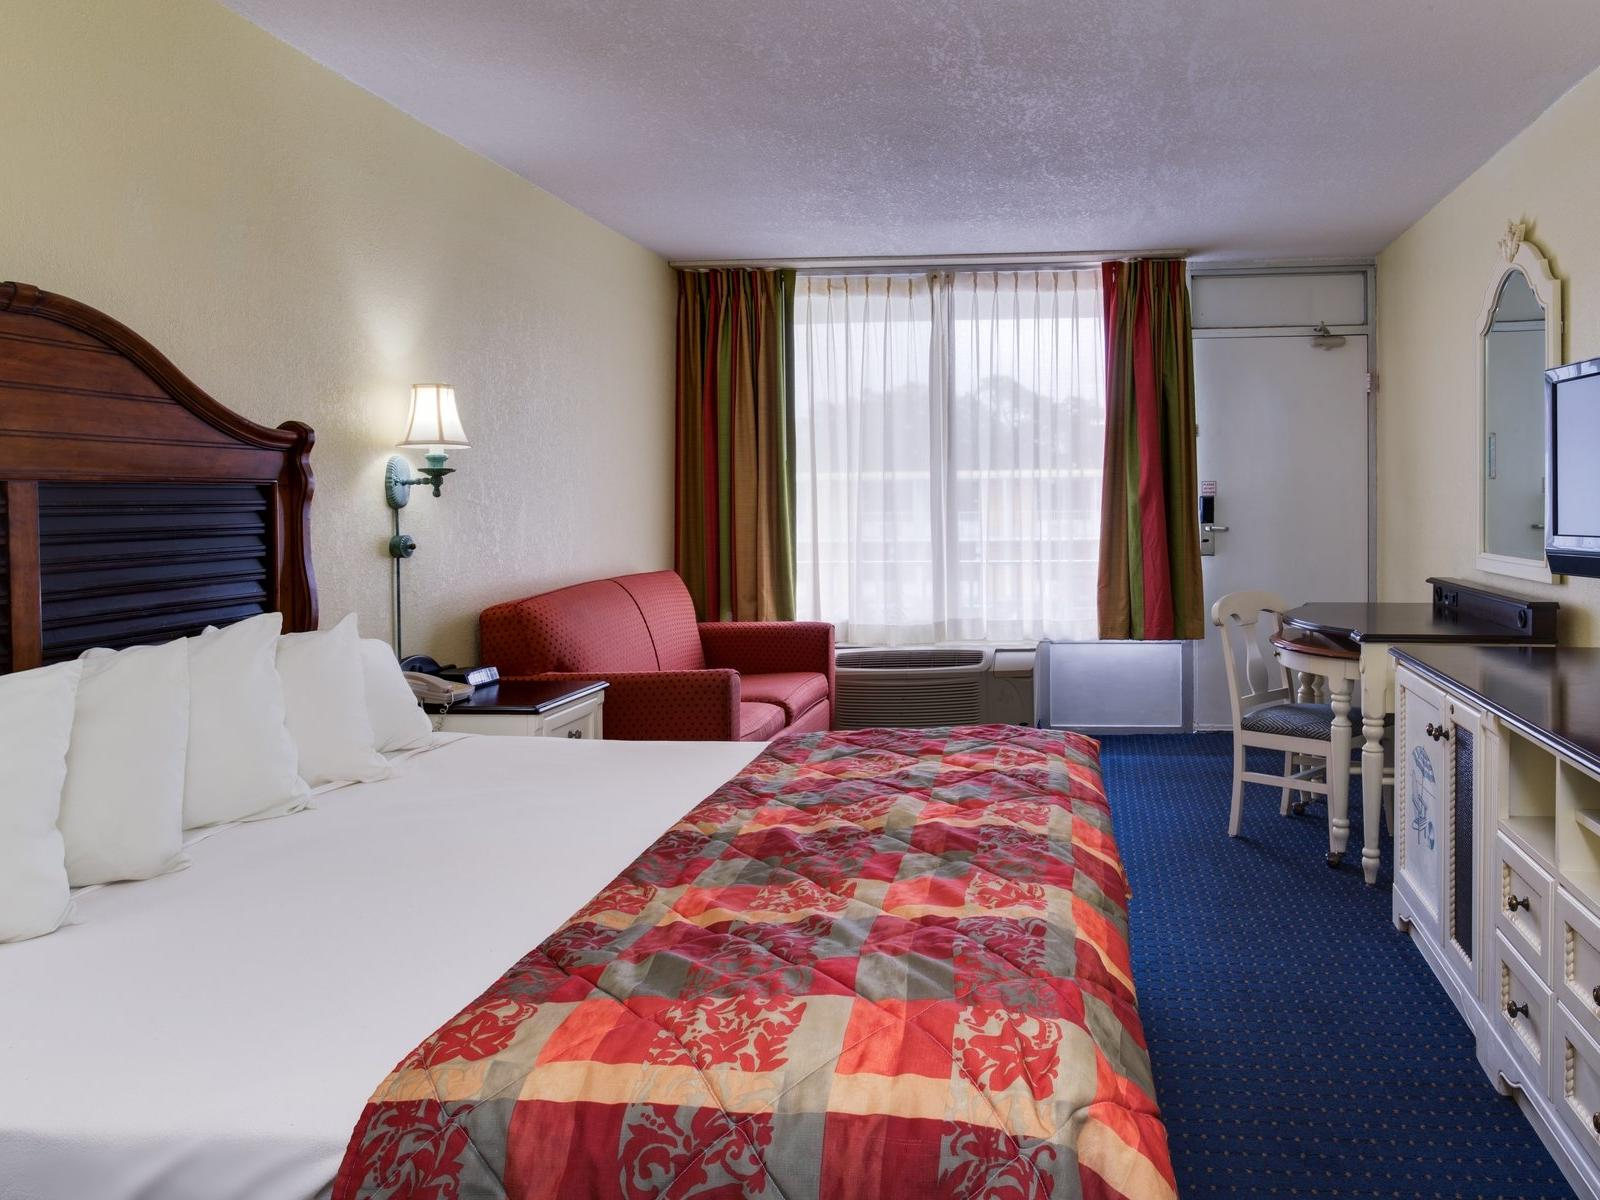 Seralago Hotel & Suites - Old Town Kissimmee Hotels Near